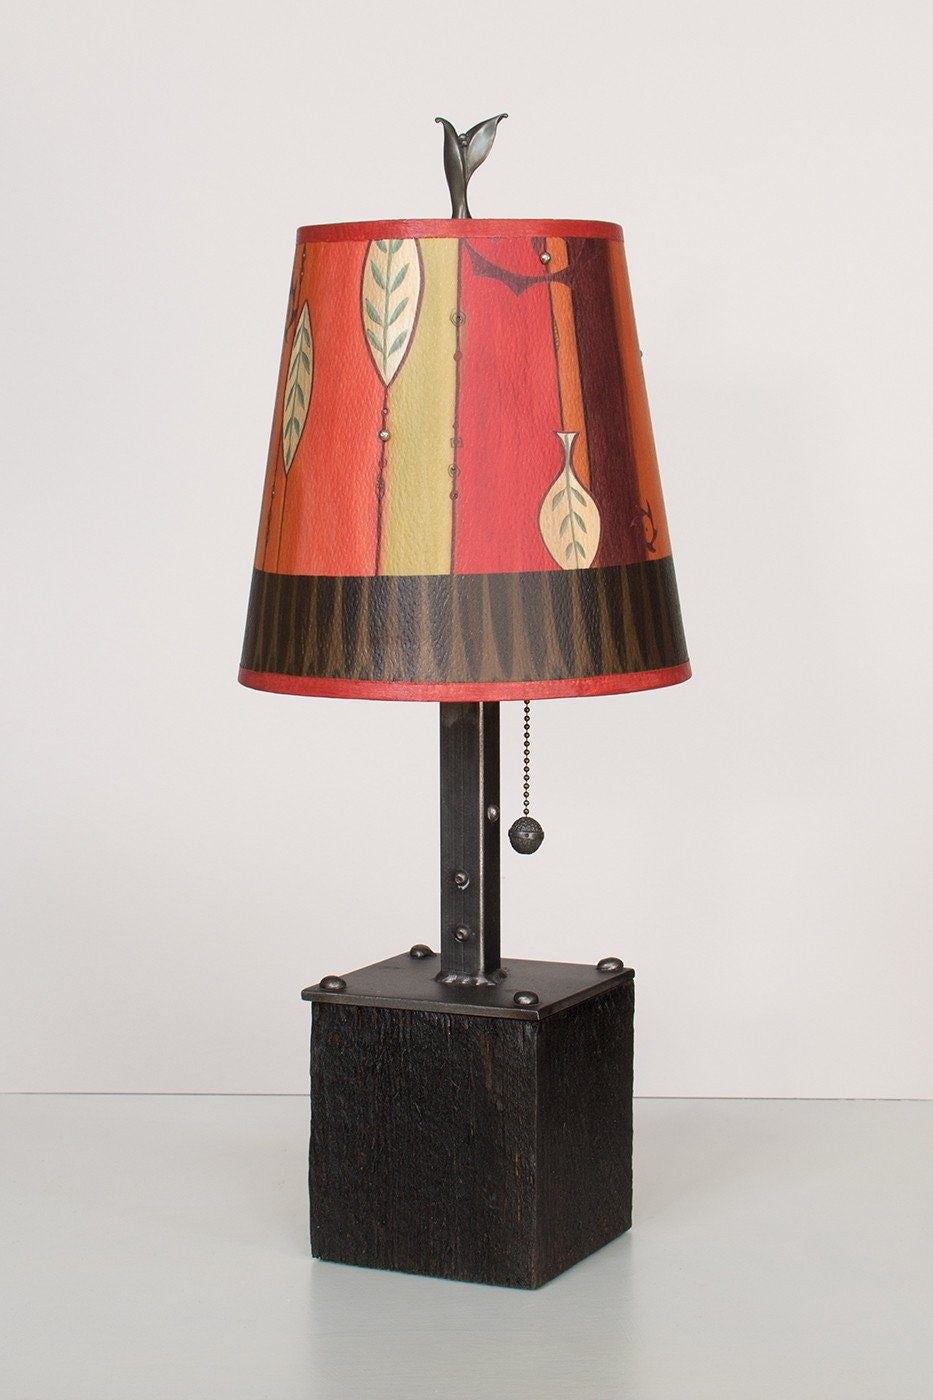 Steel Table Lamp on Reclaimed Wood with Small Drum Shade in Leaf Stripe Red Lit